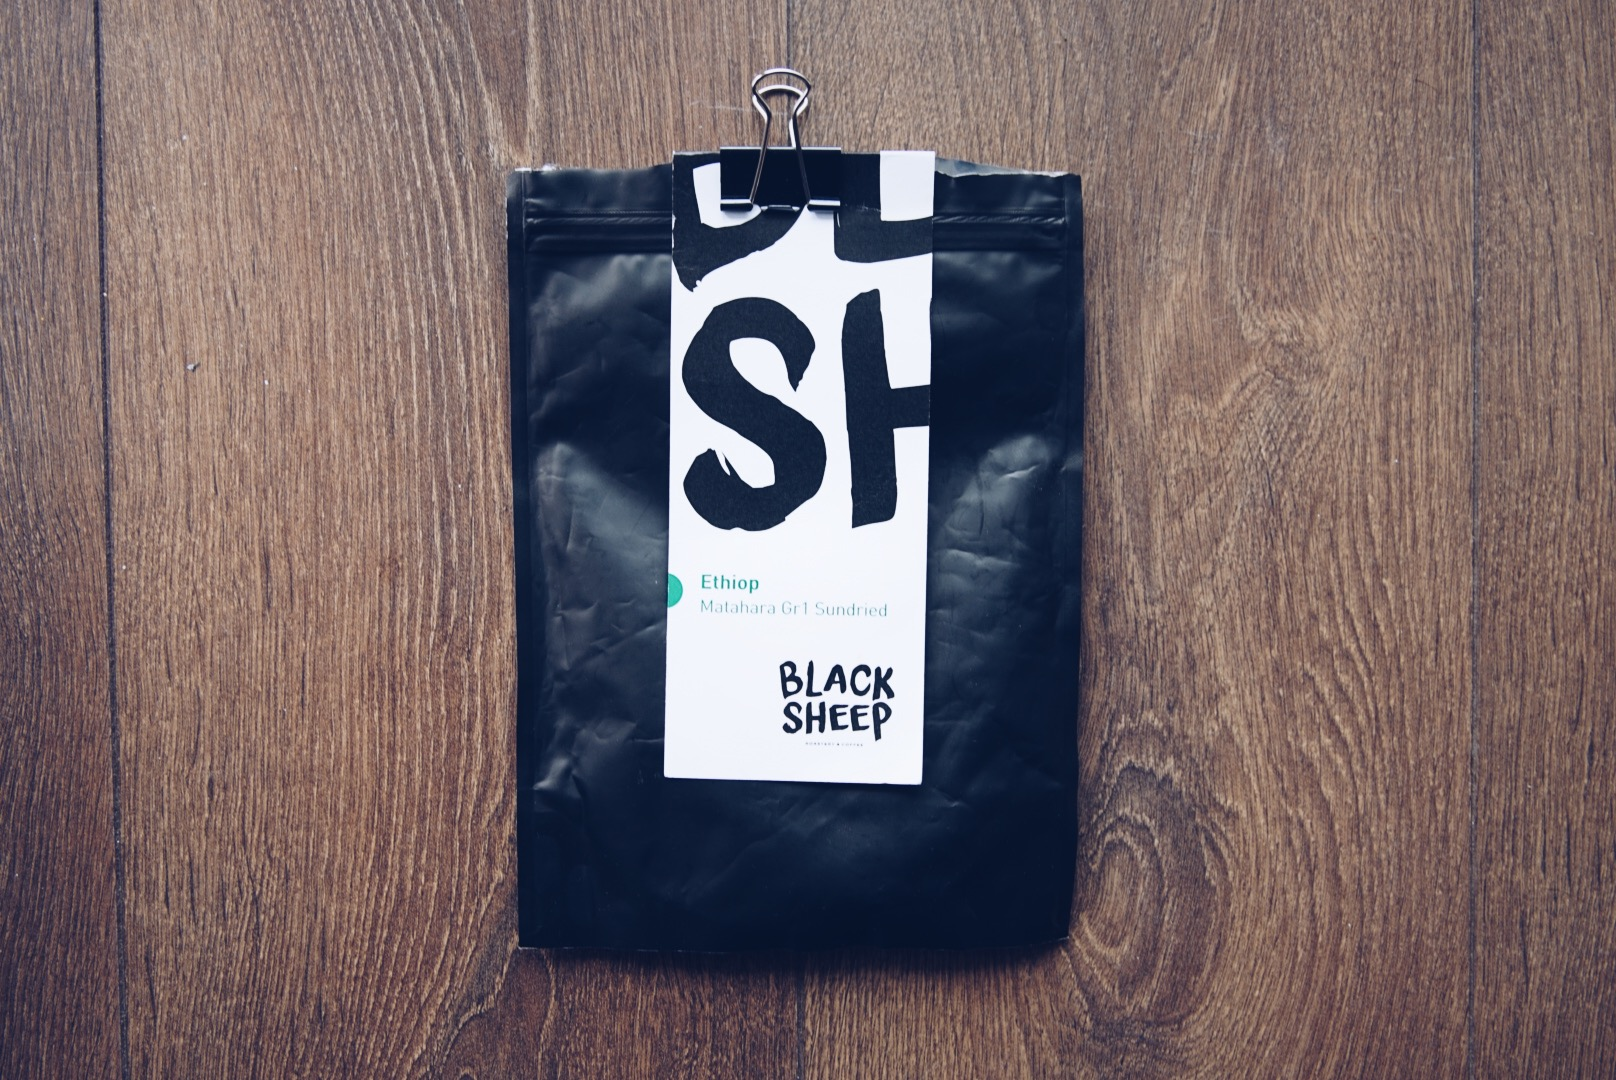 Black Sheep, Etiopia Matahara Gr 1 Sundried